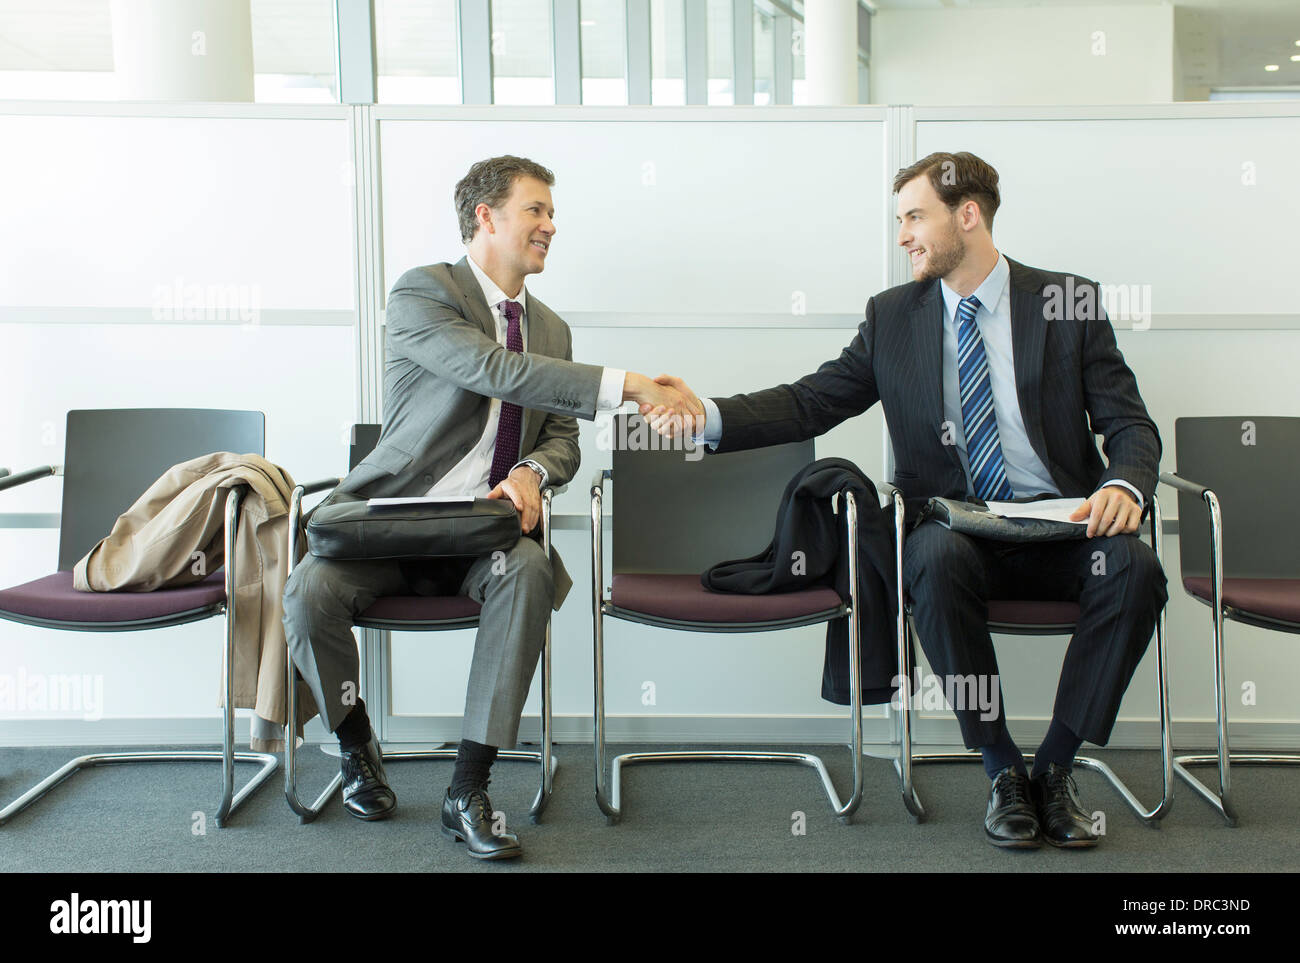 Businessmen shaking hands in waiting area - Stock Image